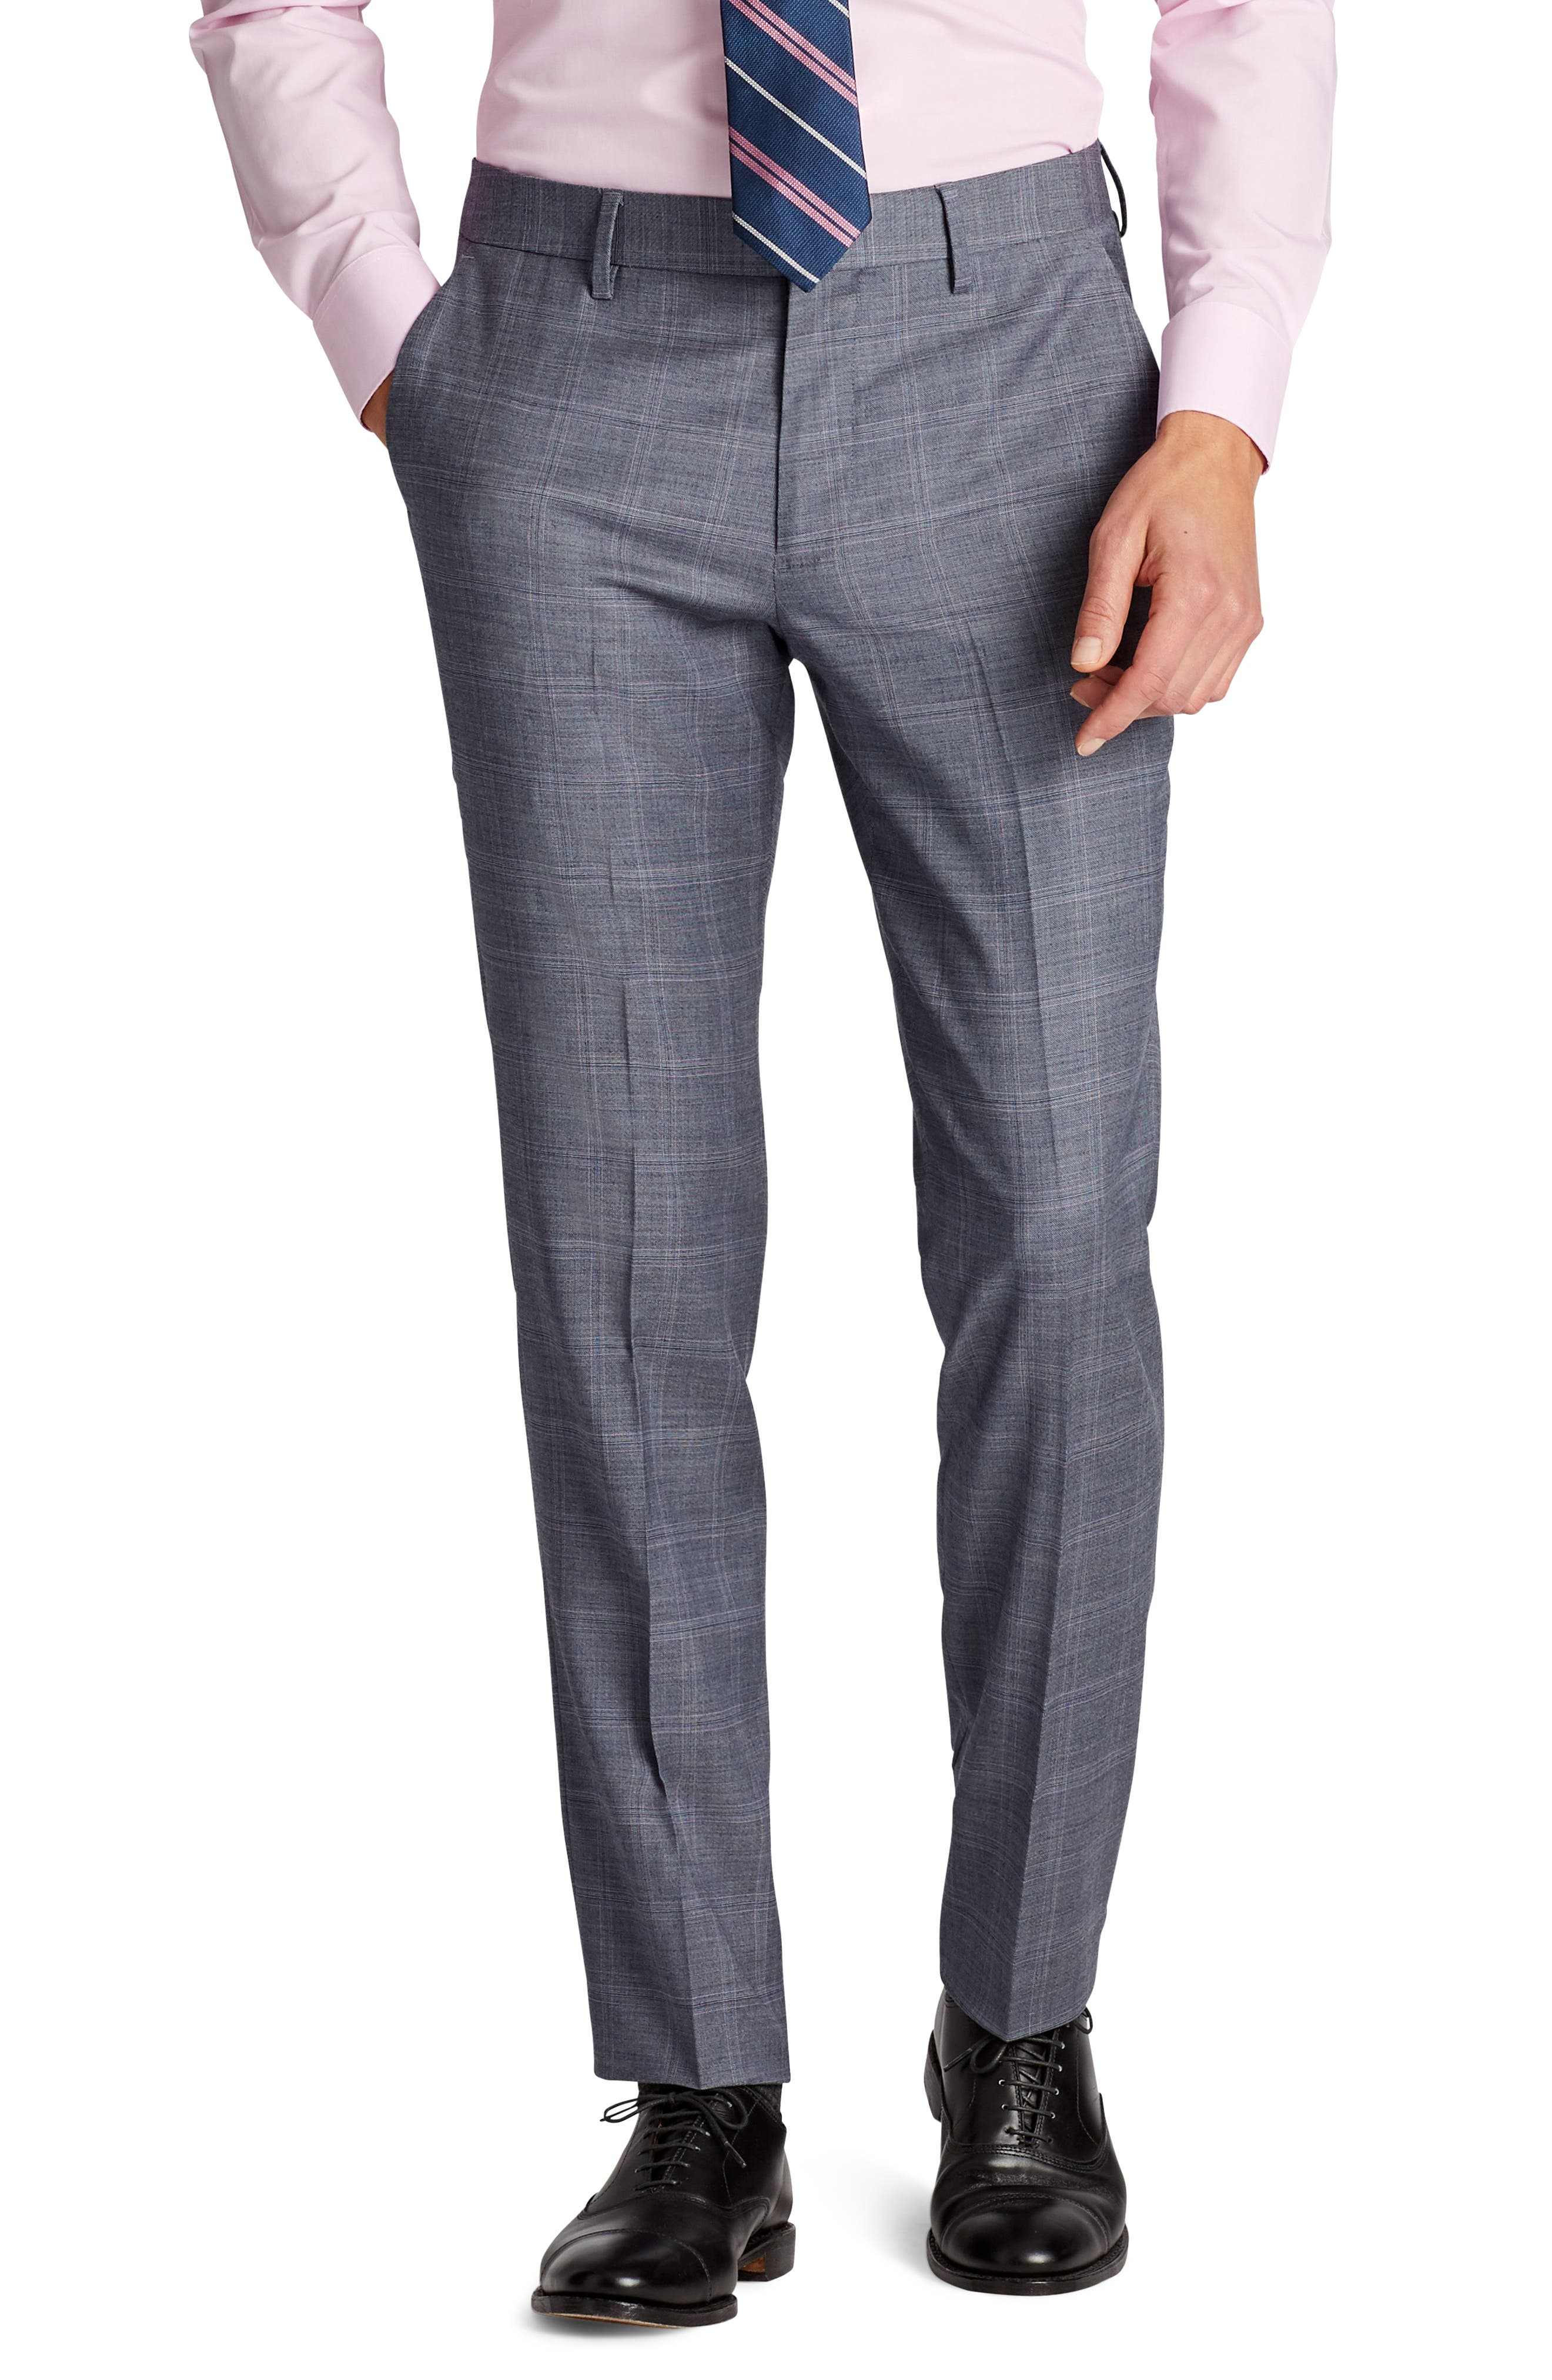 Jetsetter Flat Front Stretch Plaid Wool Trousers,                         Main,                         color, Grey Plaid